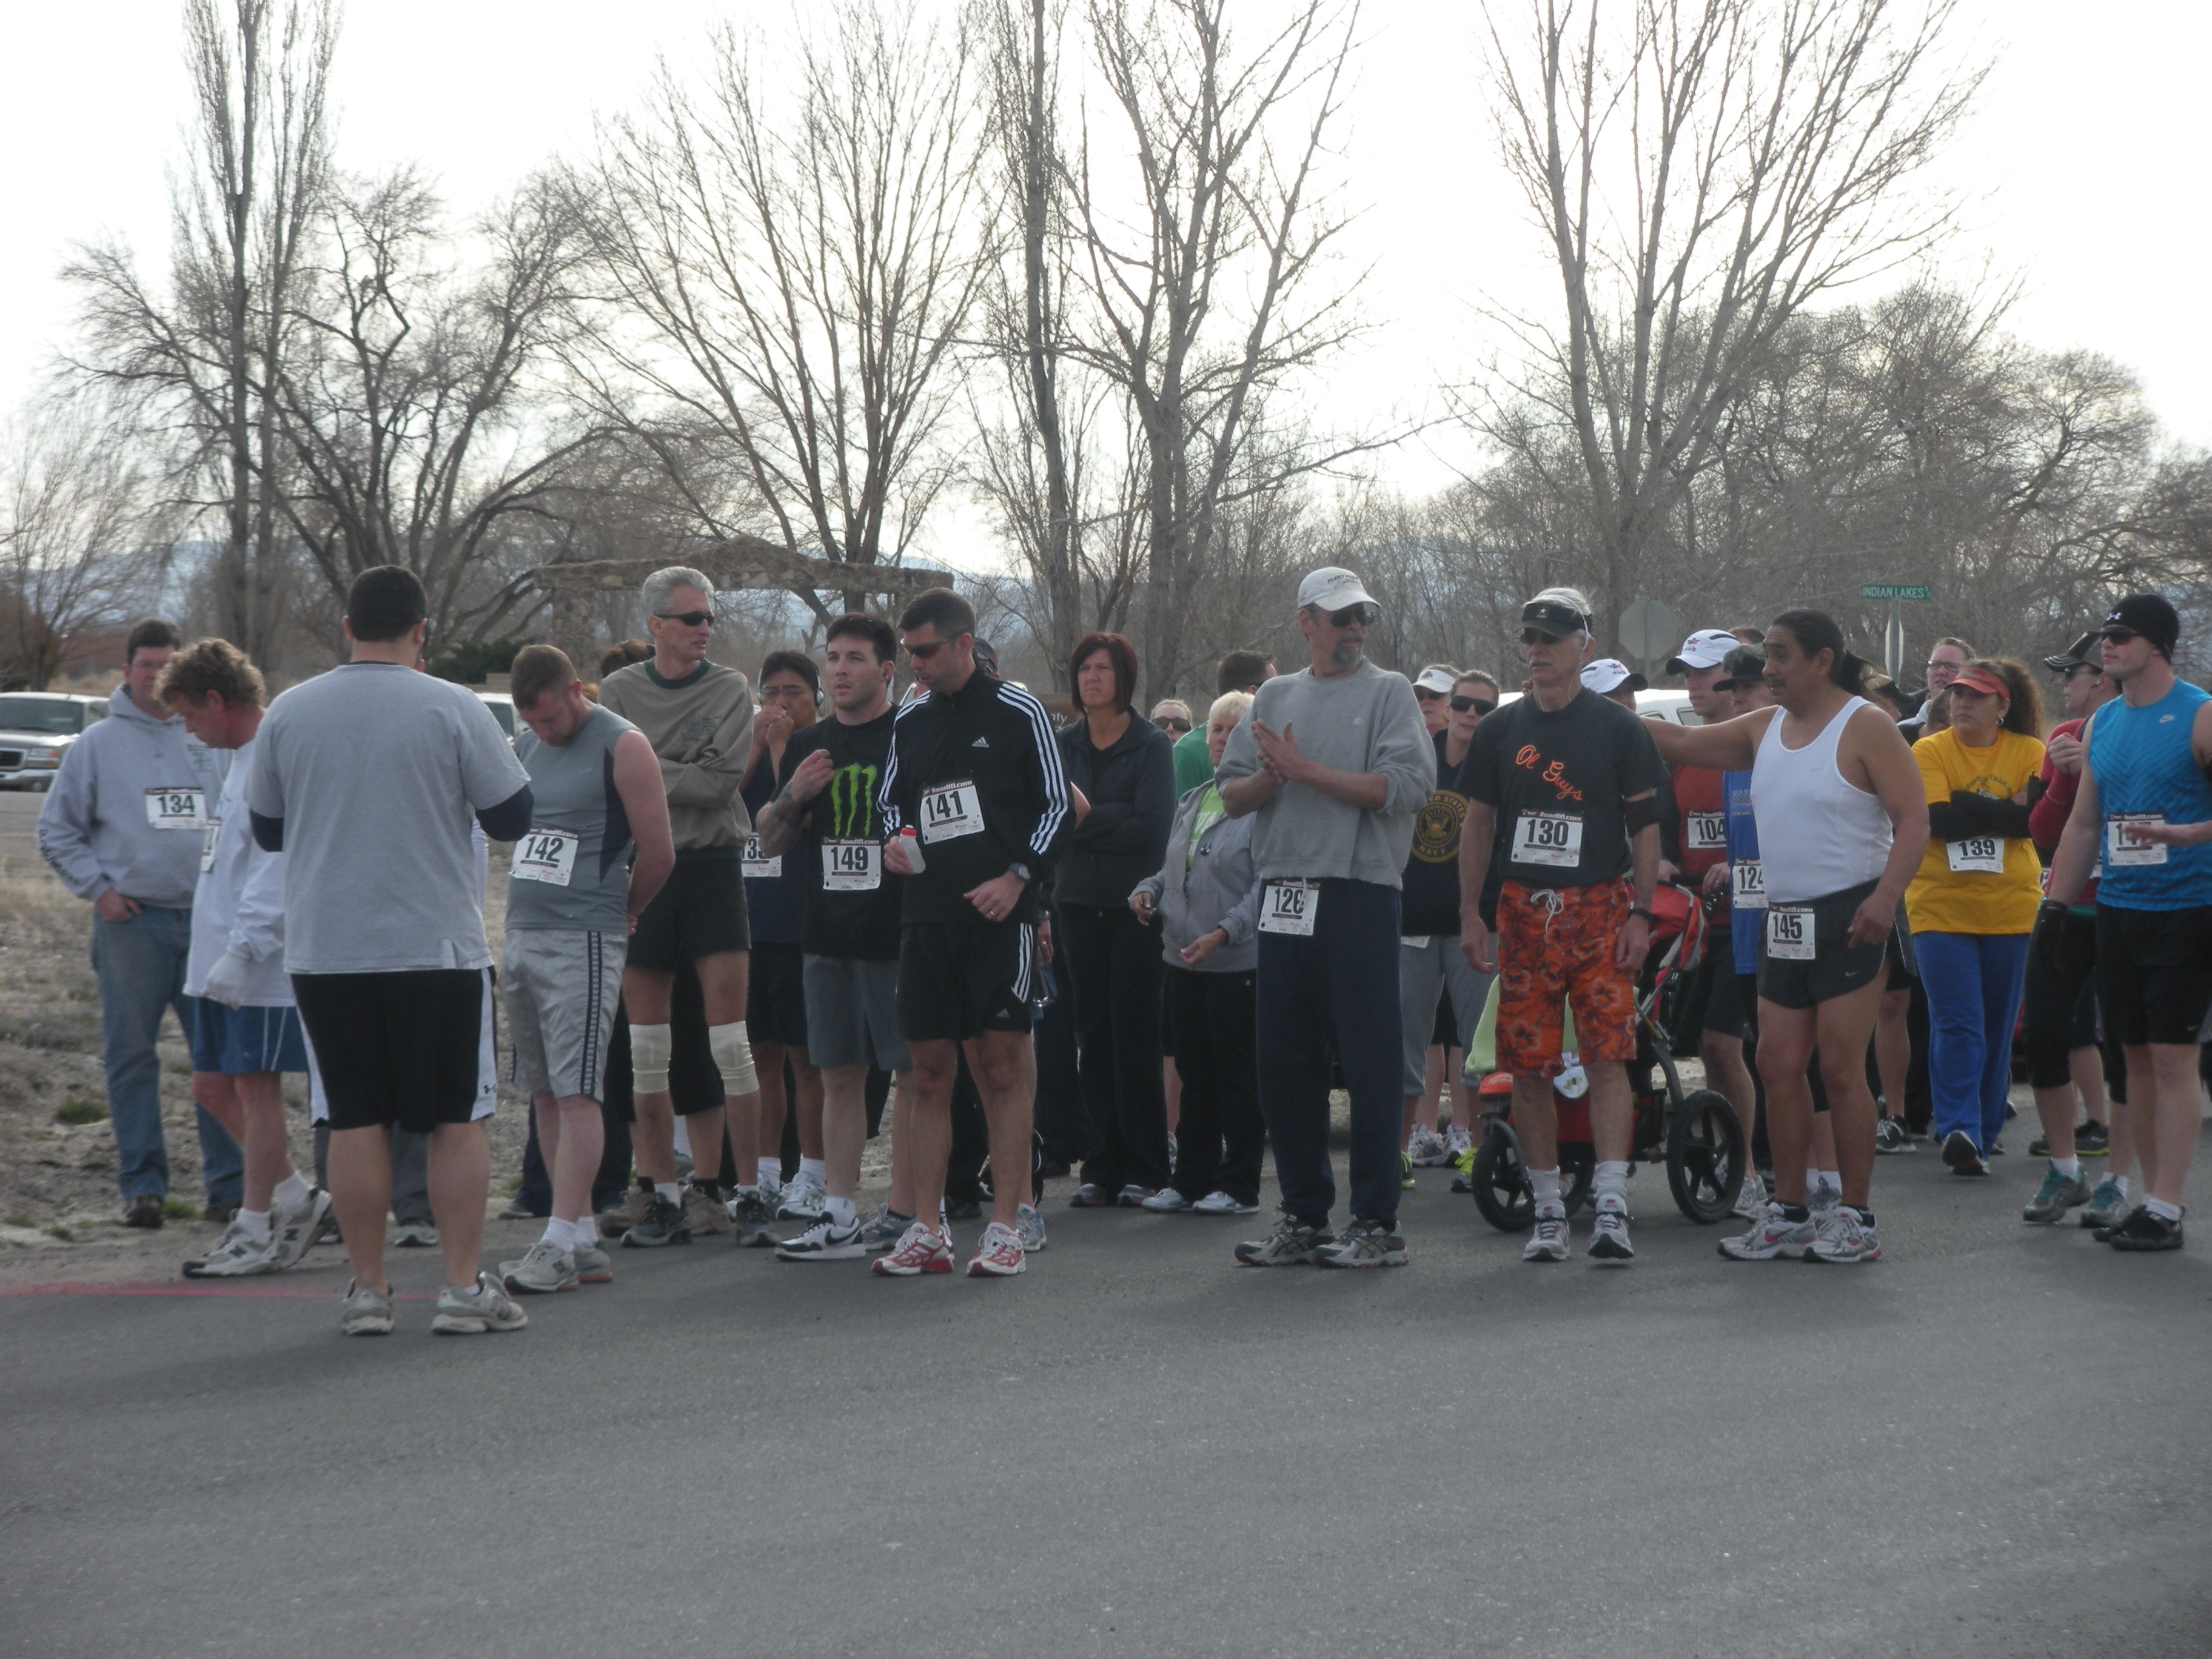 People at Starting Line for 5K